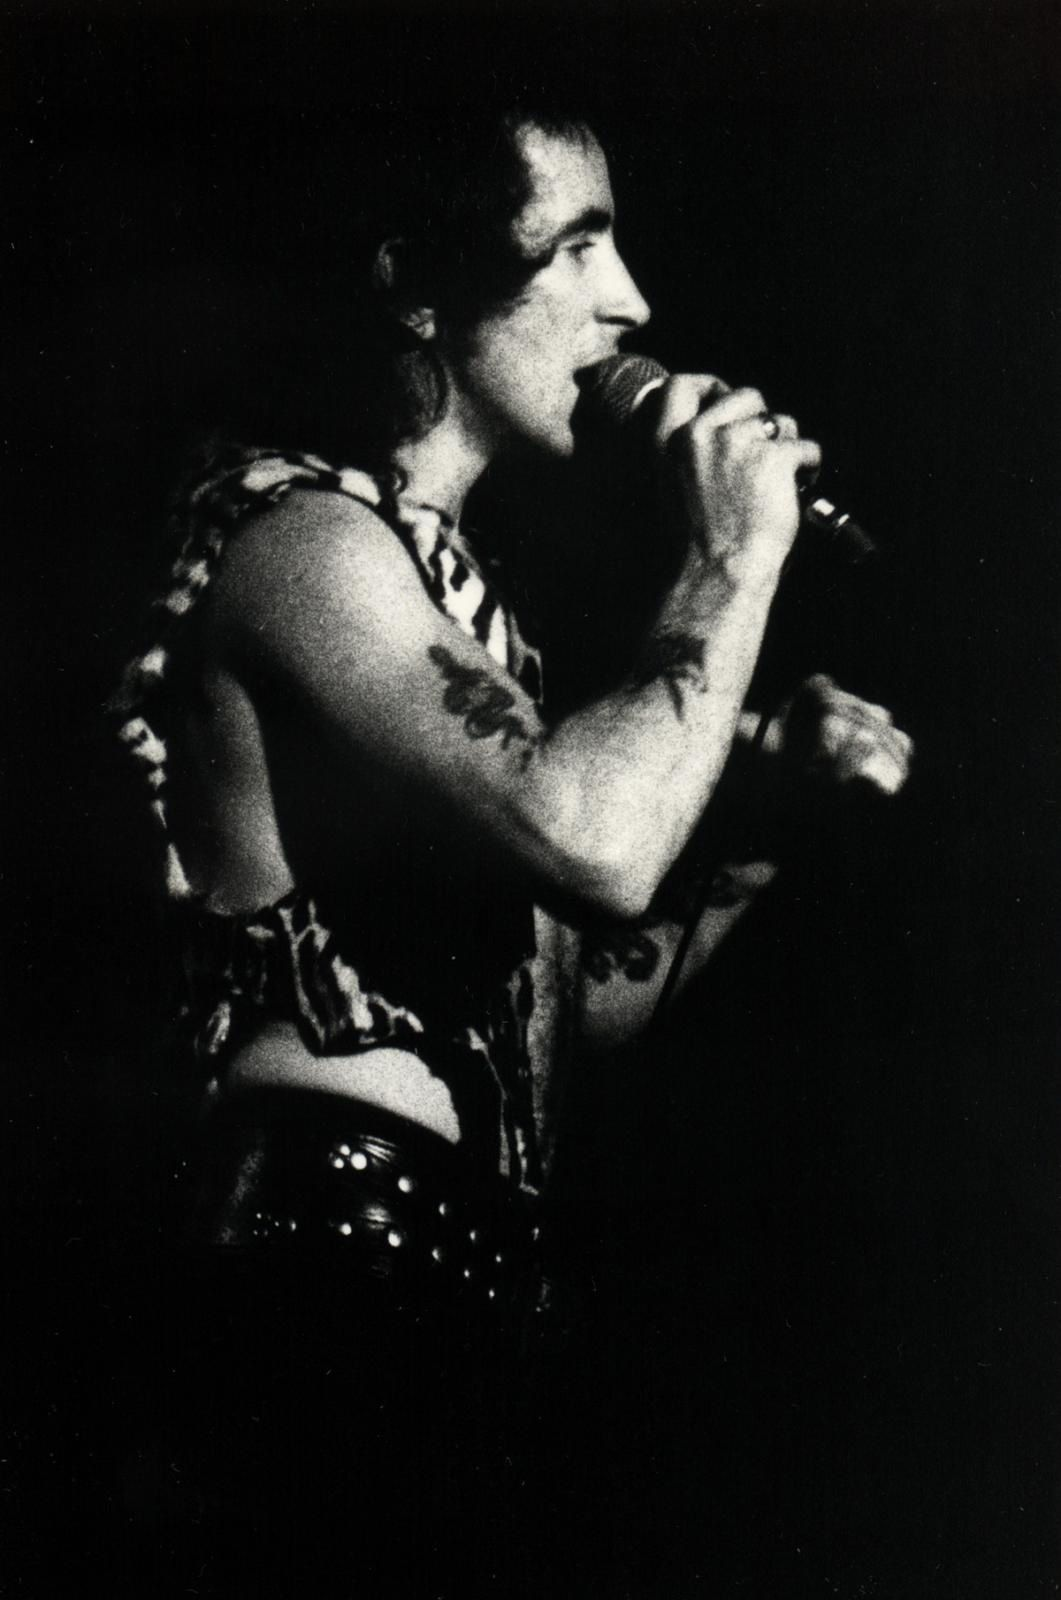 Happy birthday, Bon Scott